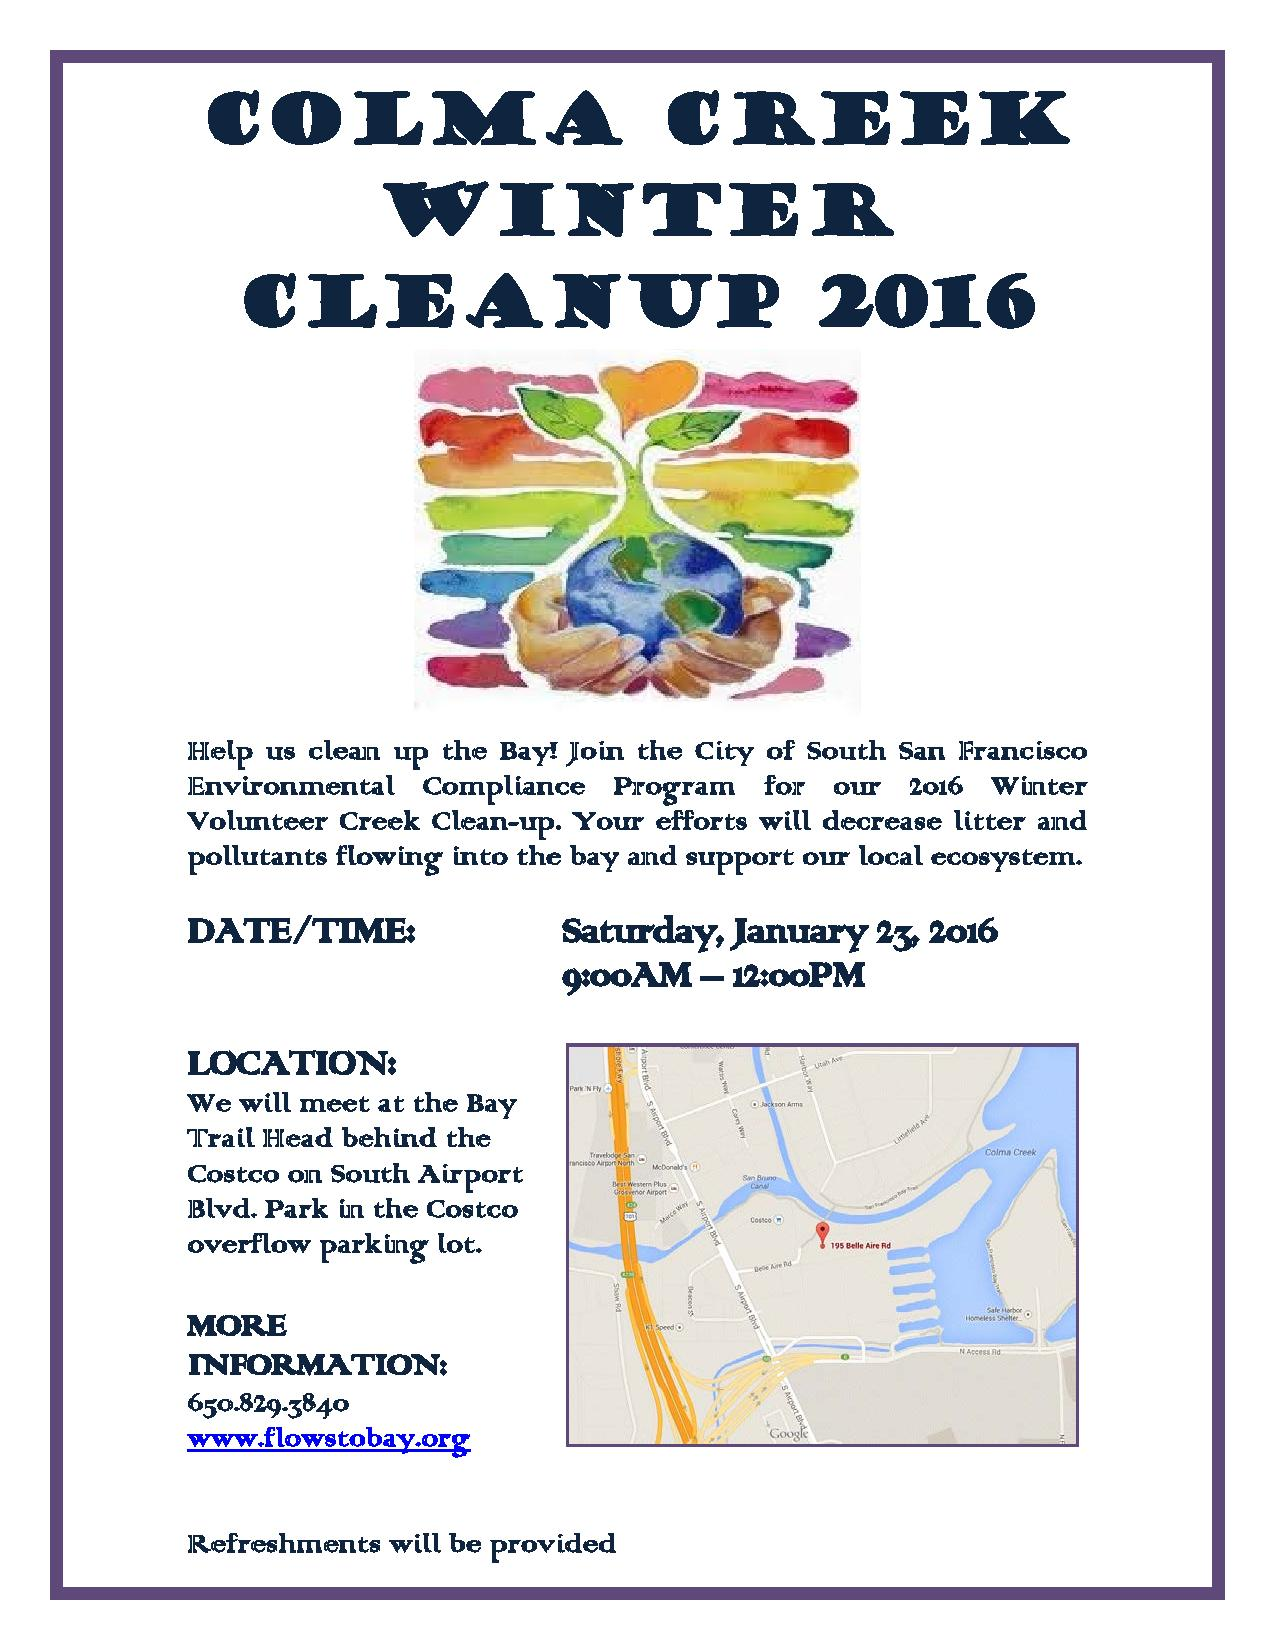 CANCELED! Colma Creek Winter Clean Up 2016